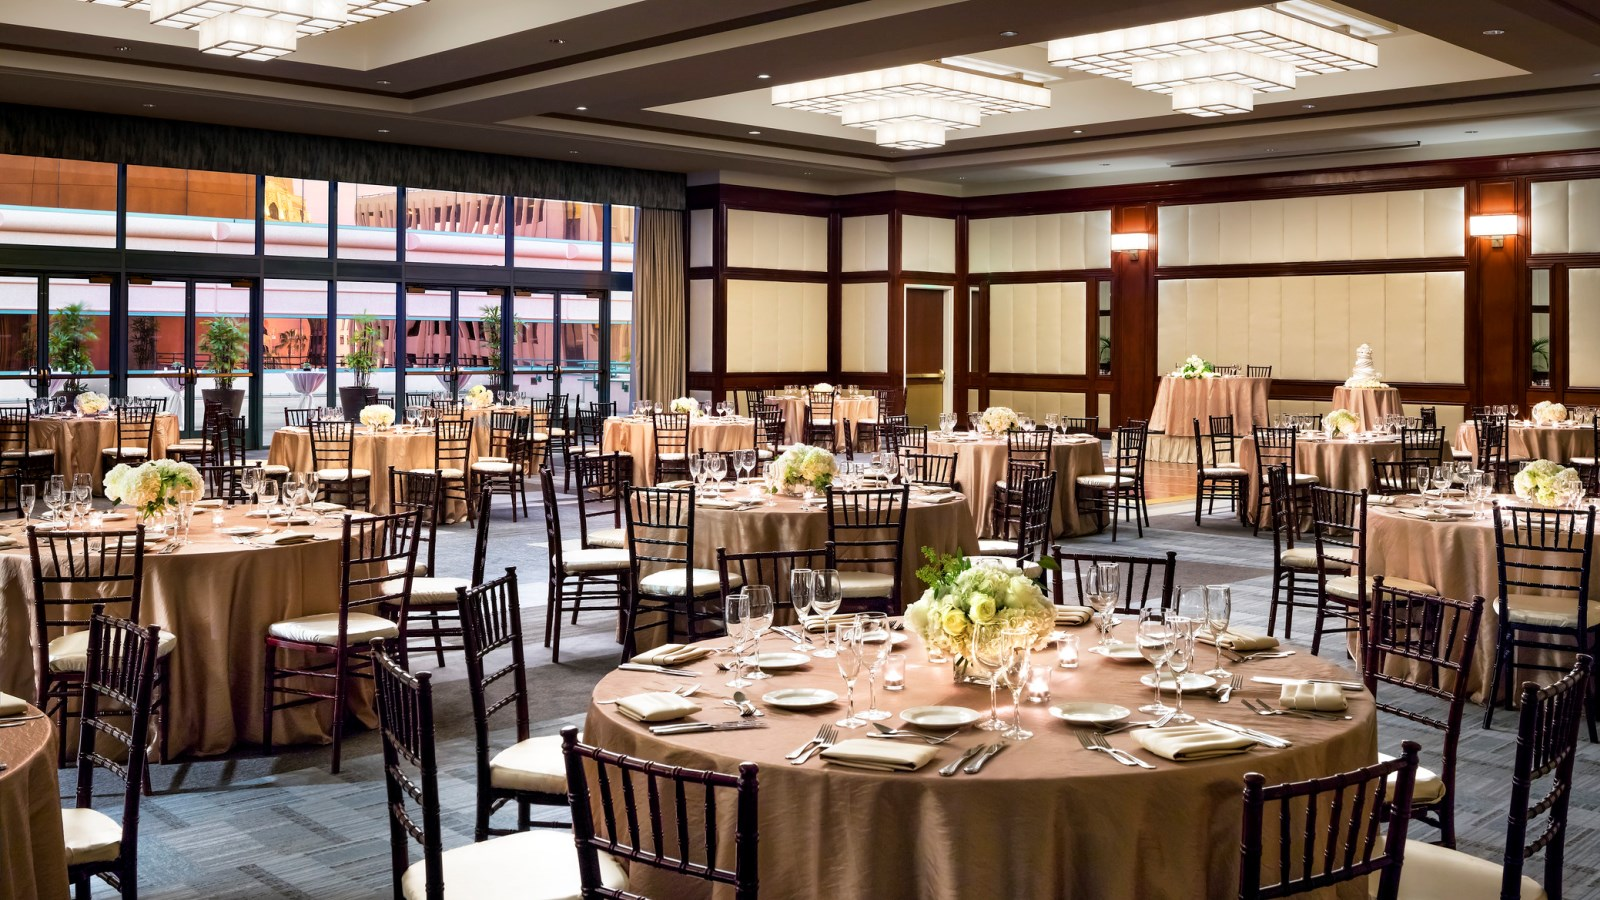 Long Beach Wedding Venues - Centennial Ballroom Reception